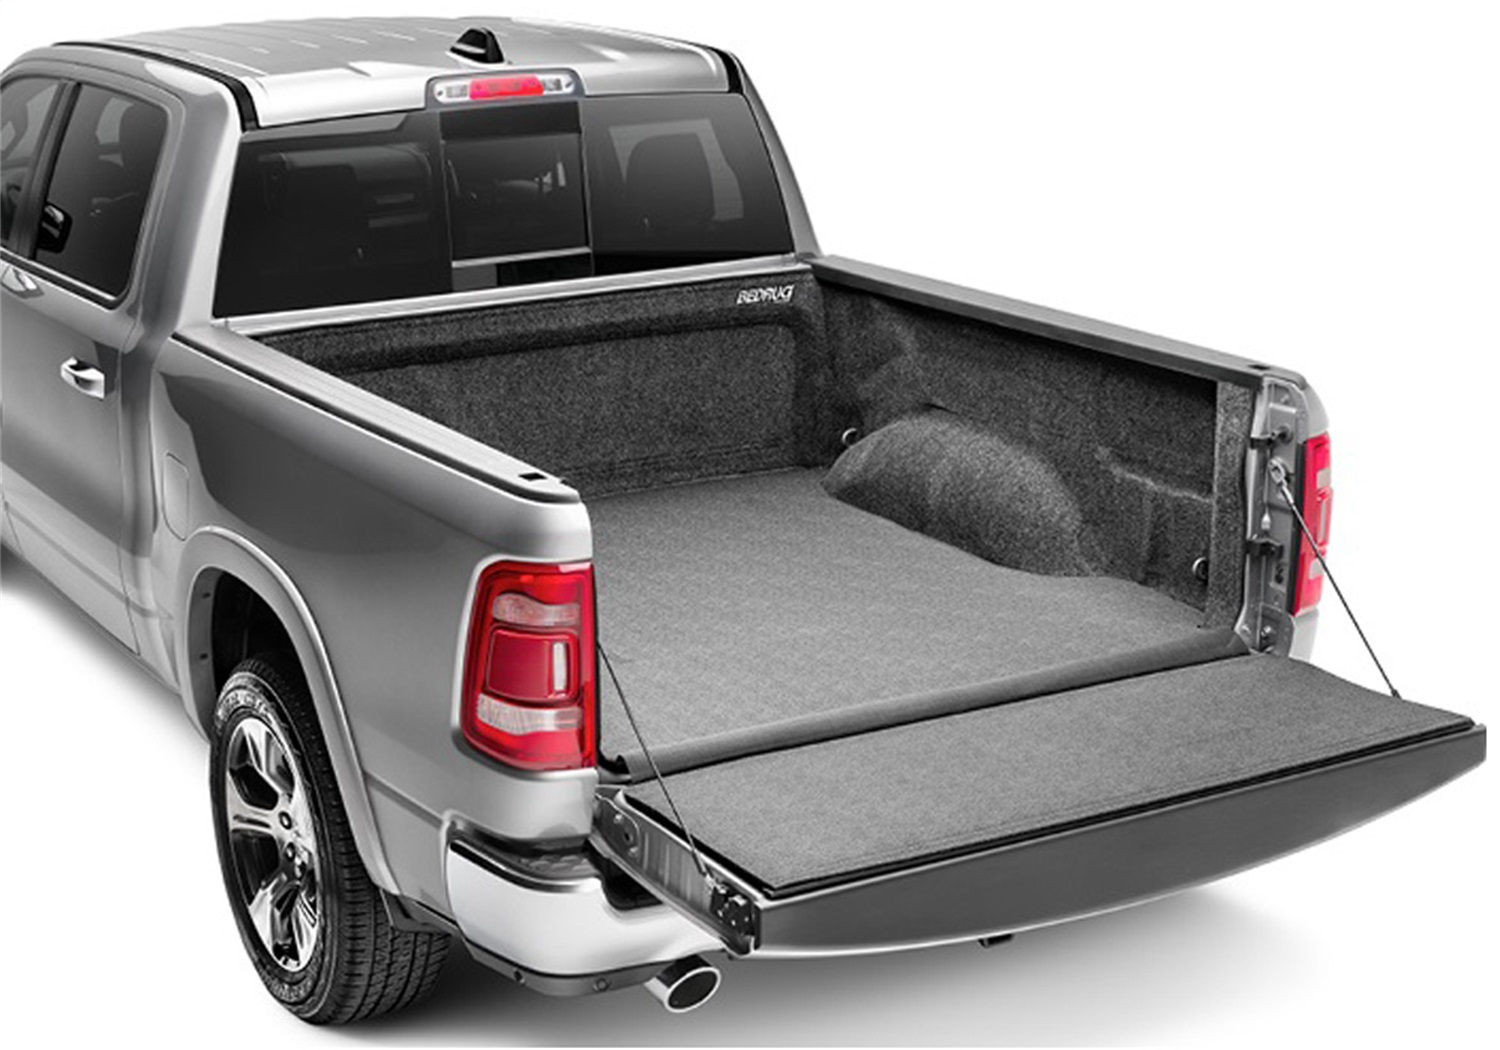 Impact Bed Liner, For Use w/Spray On Bed Liner And Non Liner Applications